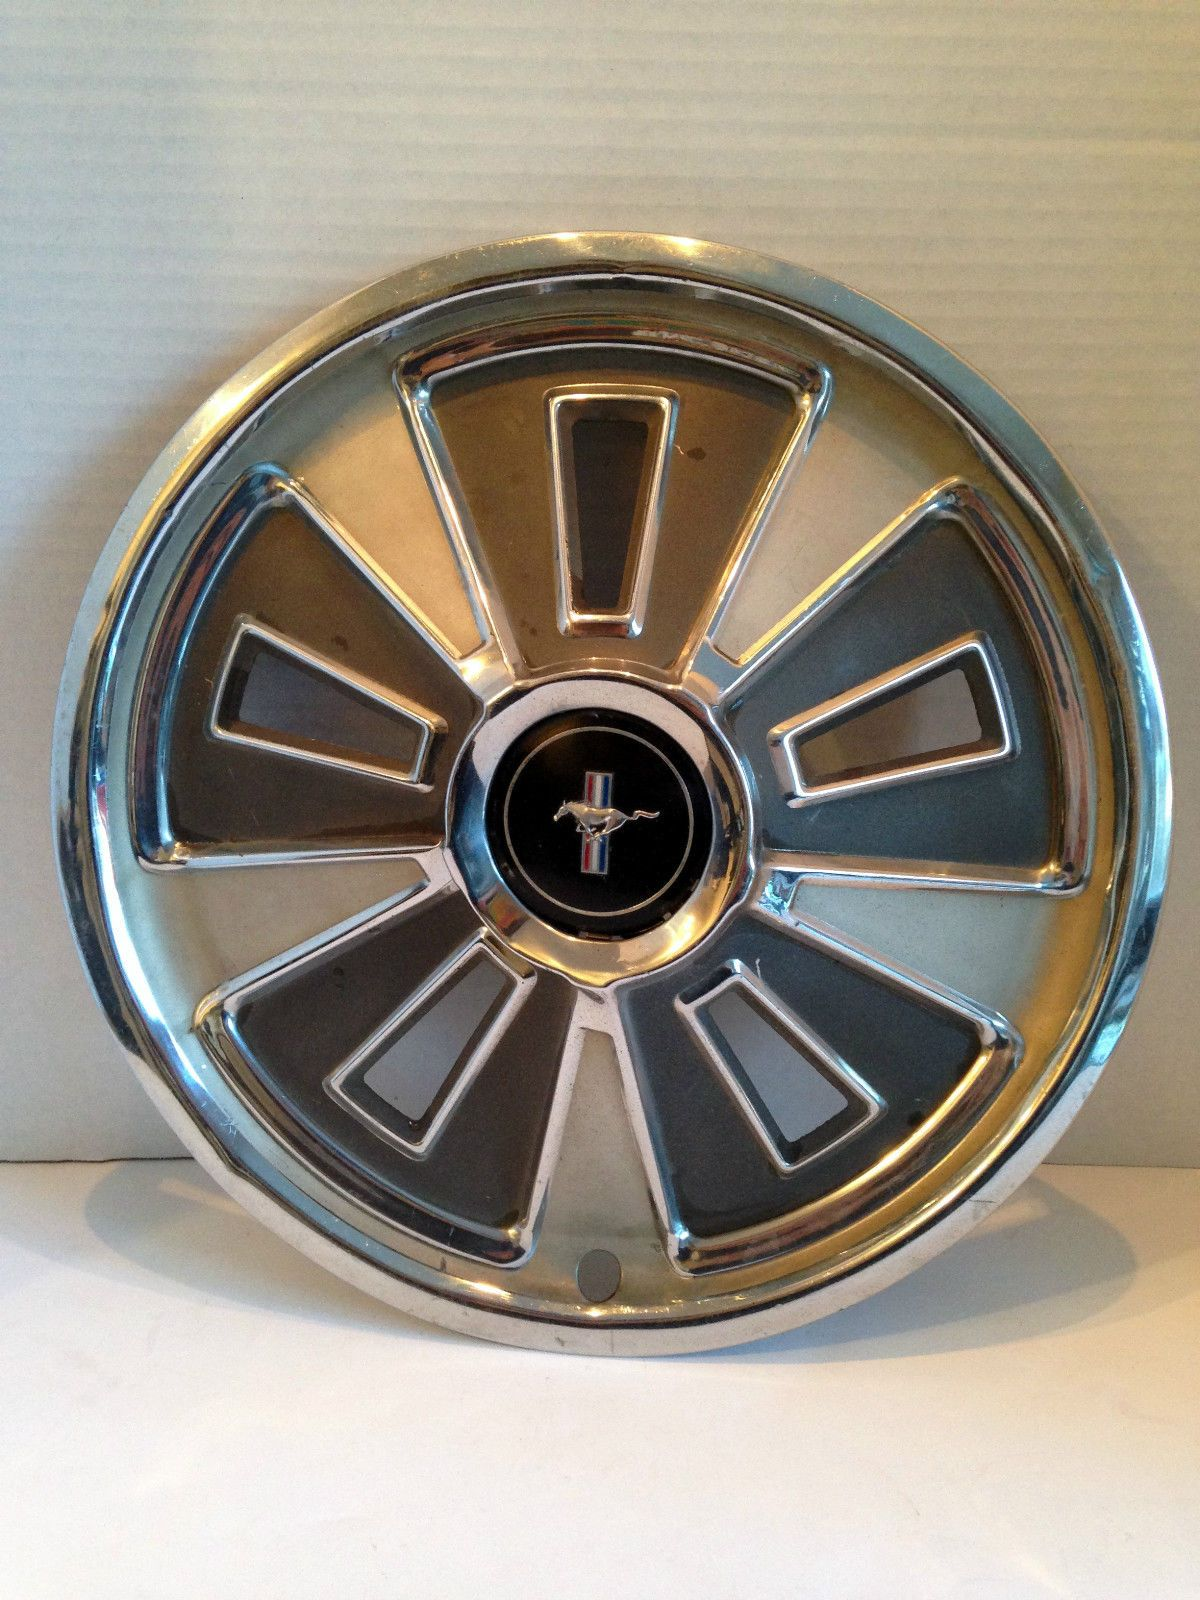 1966 vintage ford mustang hubcaps red white blue good condition 14 034 ebay vintage manwheel